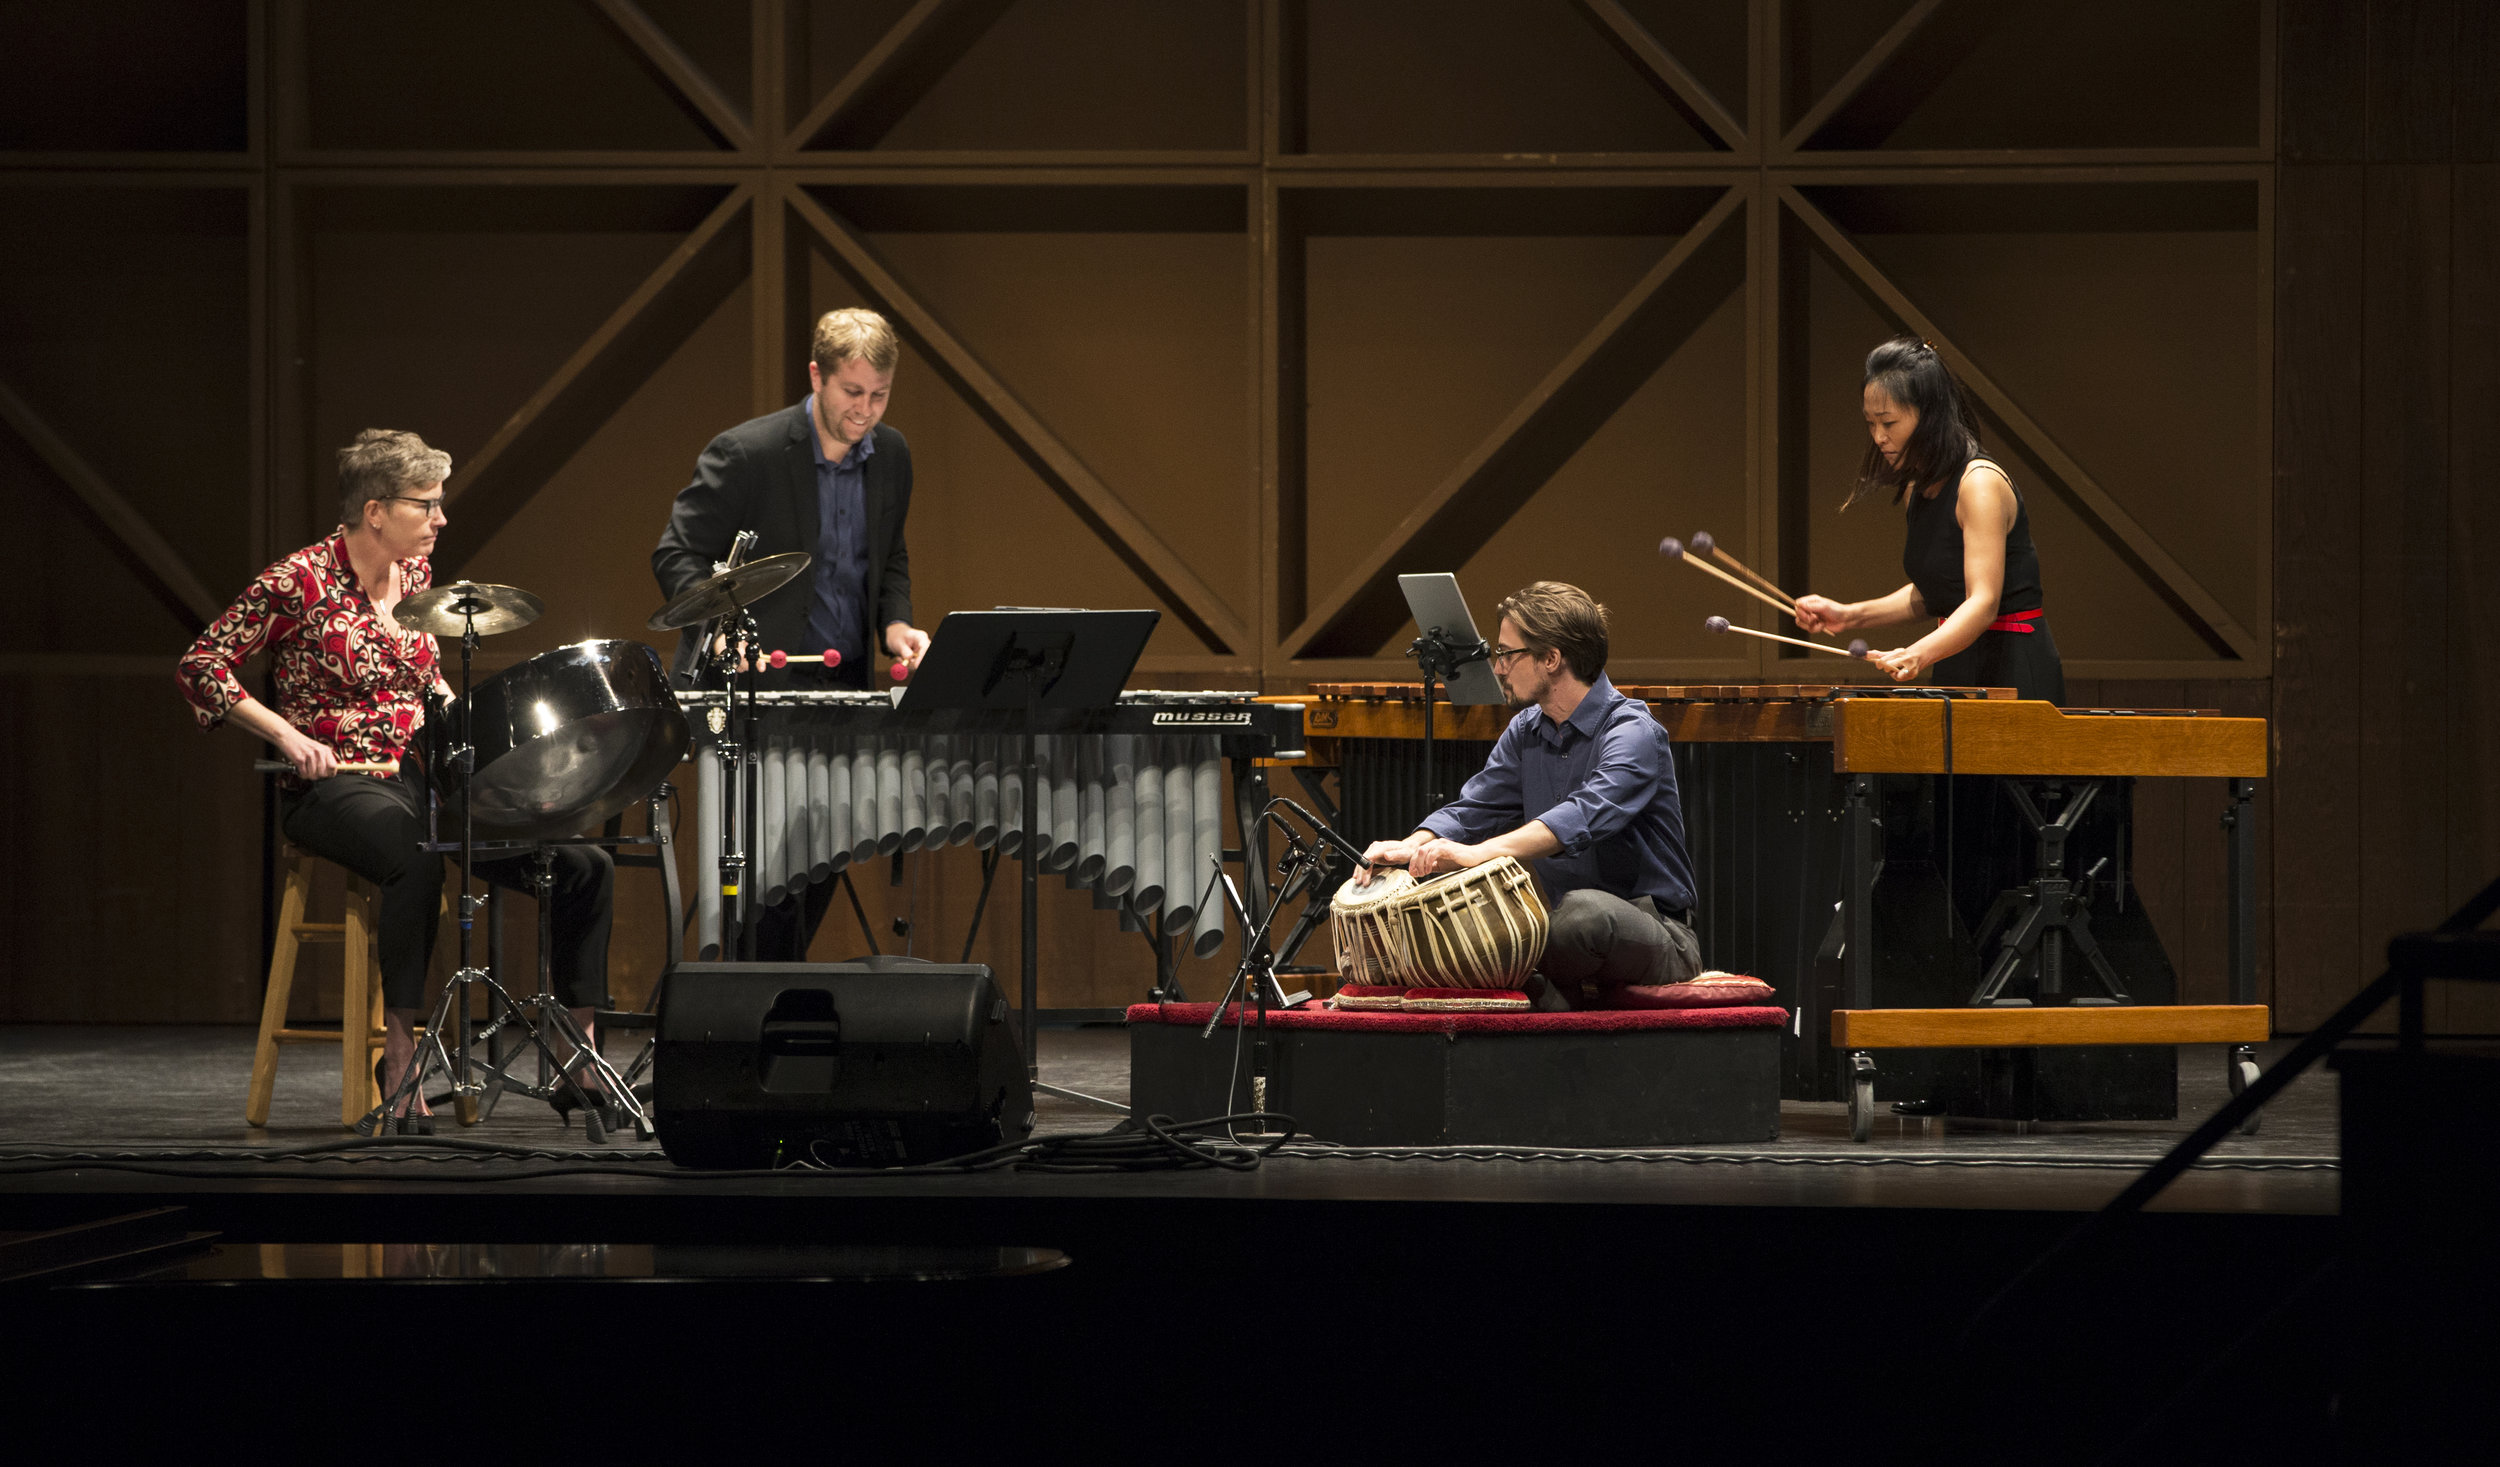 """X4 Percussion Quartet premiering Adam Silverman's """"Spiderweb Lead"""" at the 2018 Bowling Green New Music Festival. Photo Credit: Lindsay Gross"""